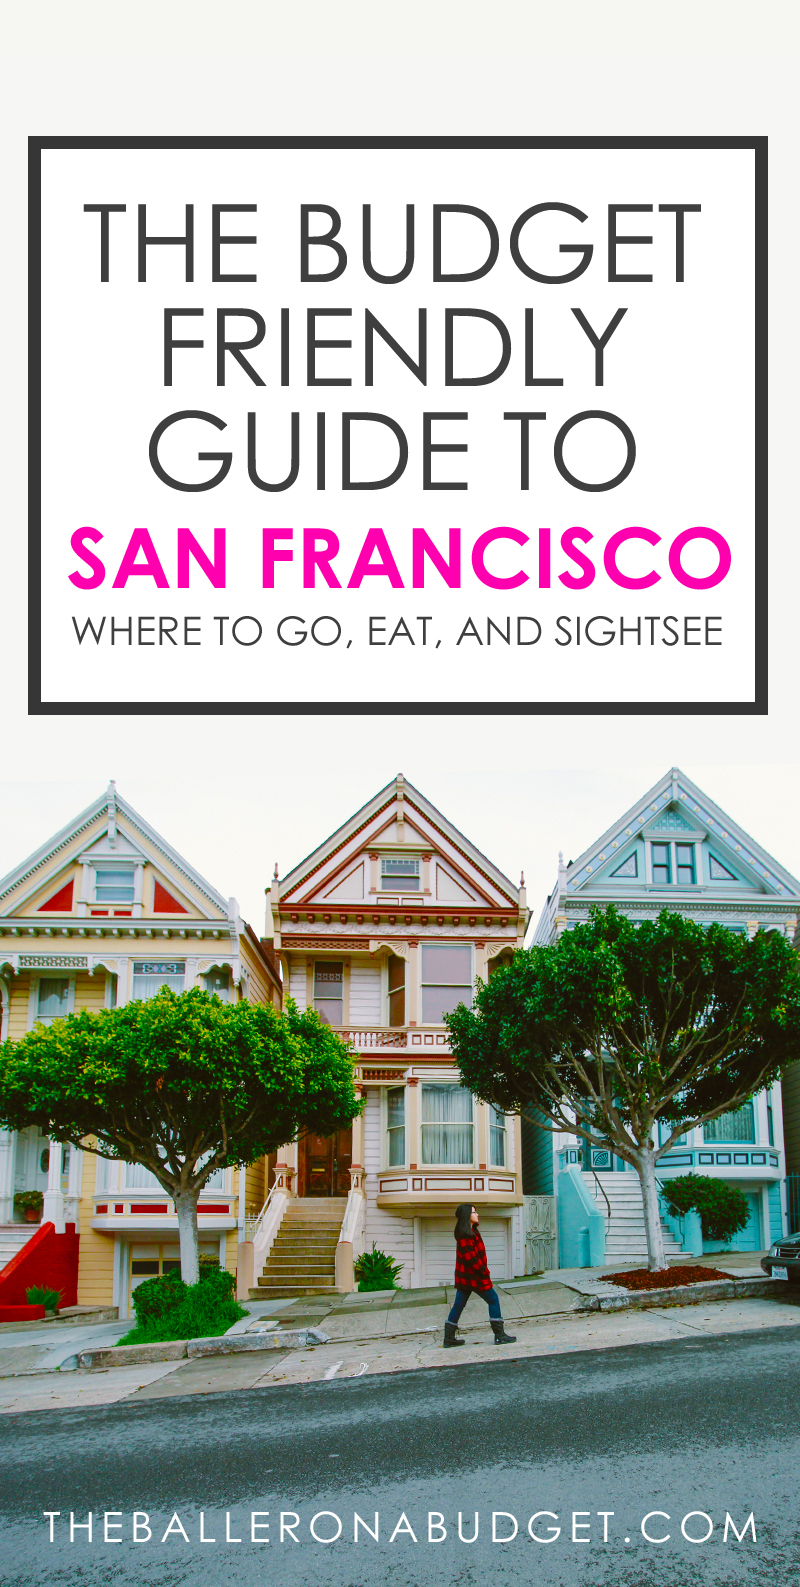 Not sure what to do during your stay in San Francisco? This is how I crossed everything off on my bucket list in 3 days. Here's the cheap guide to San Francisco to visit, eat and see, all on a budget. - www.theballeronabudget.com